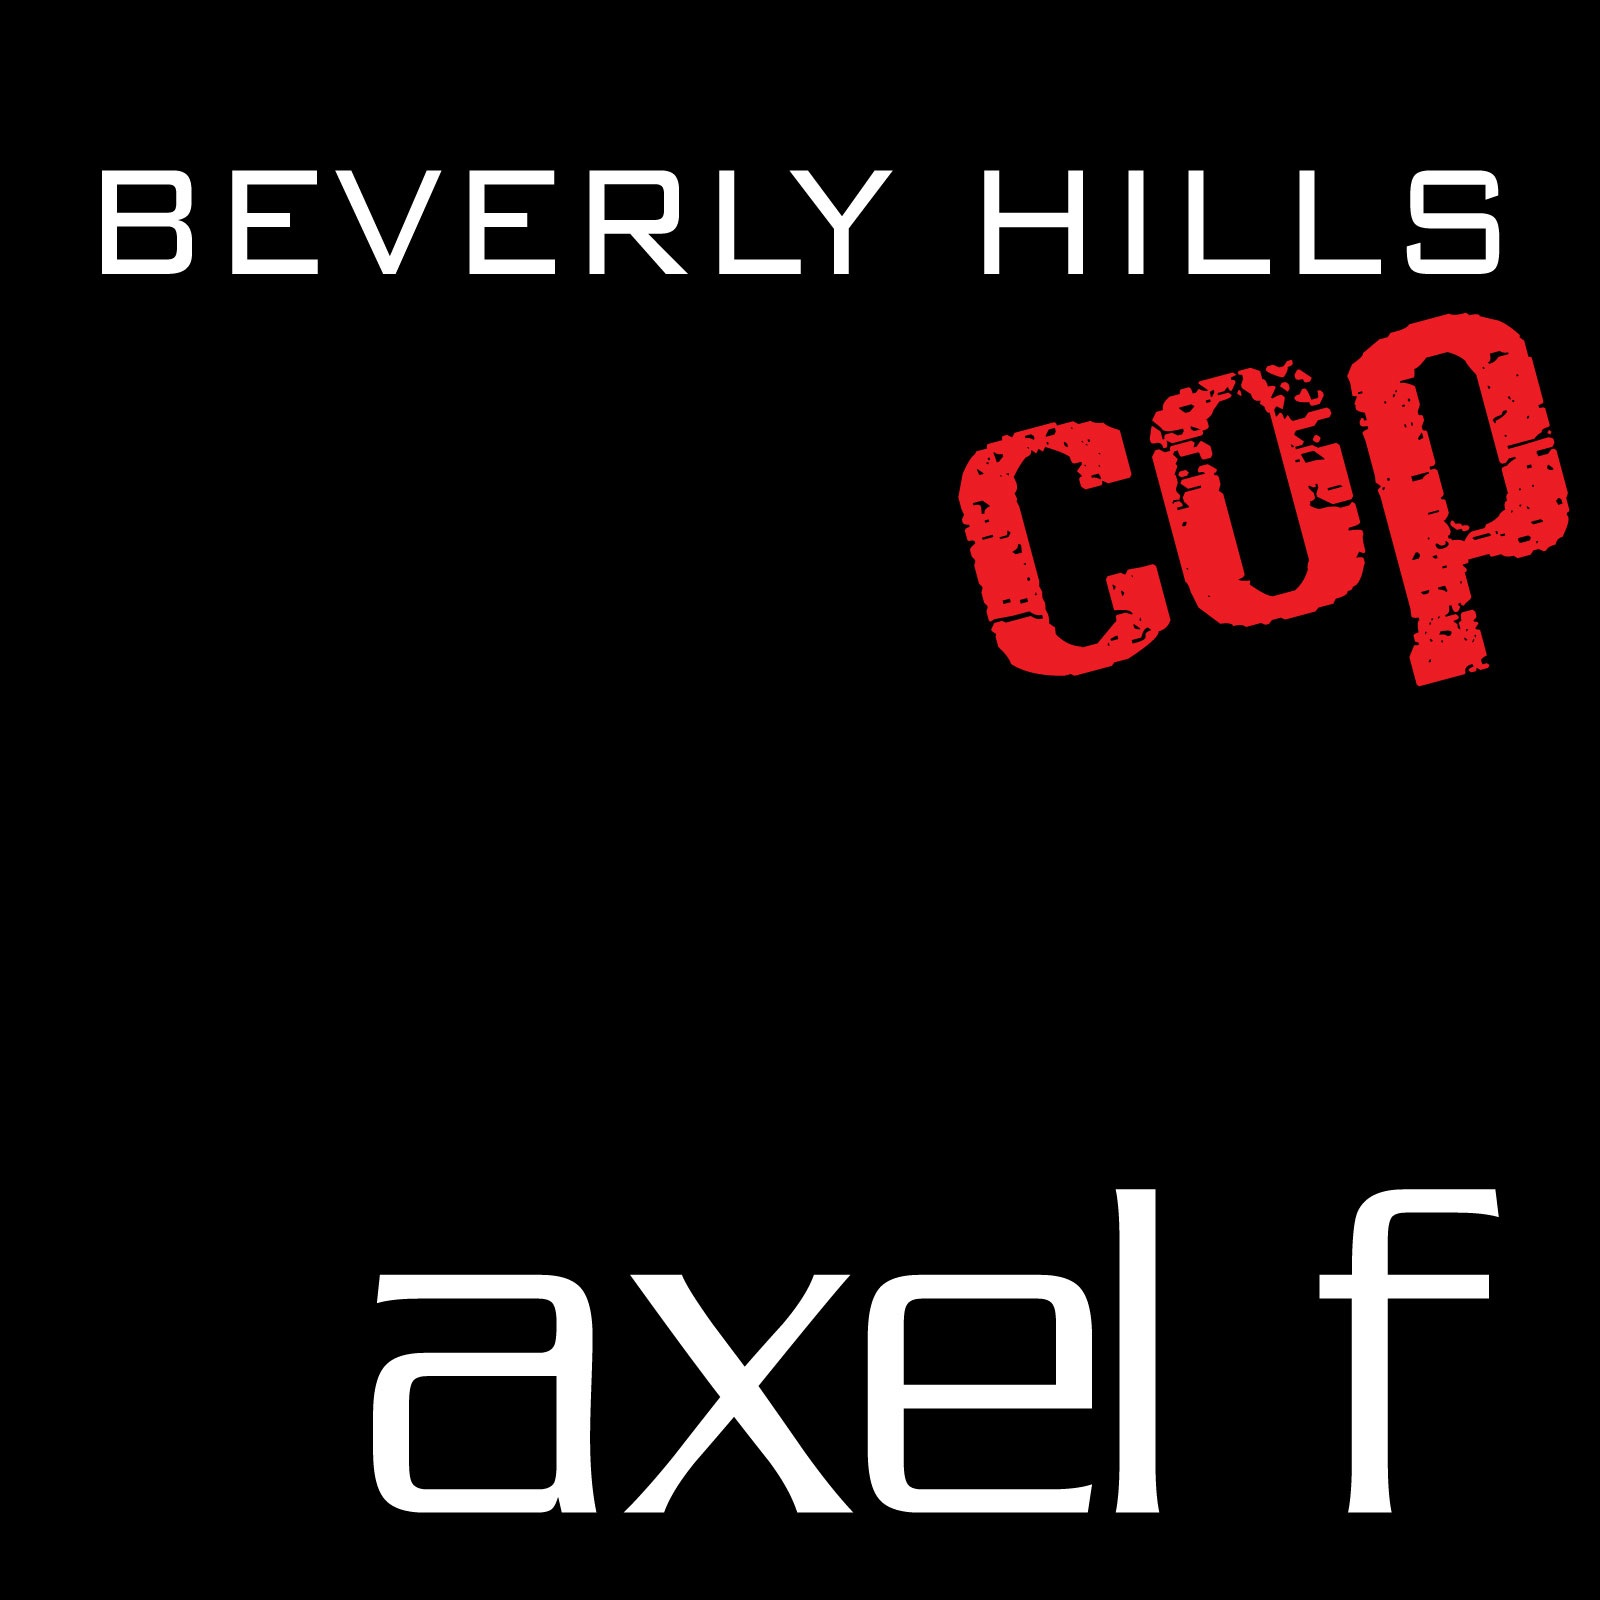 Harold Faltermeyer - Axel F (Theme From Beverly Hills Cop)